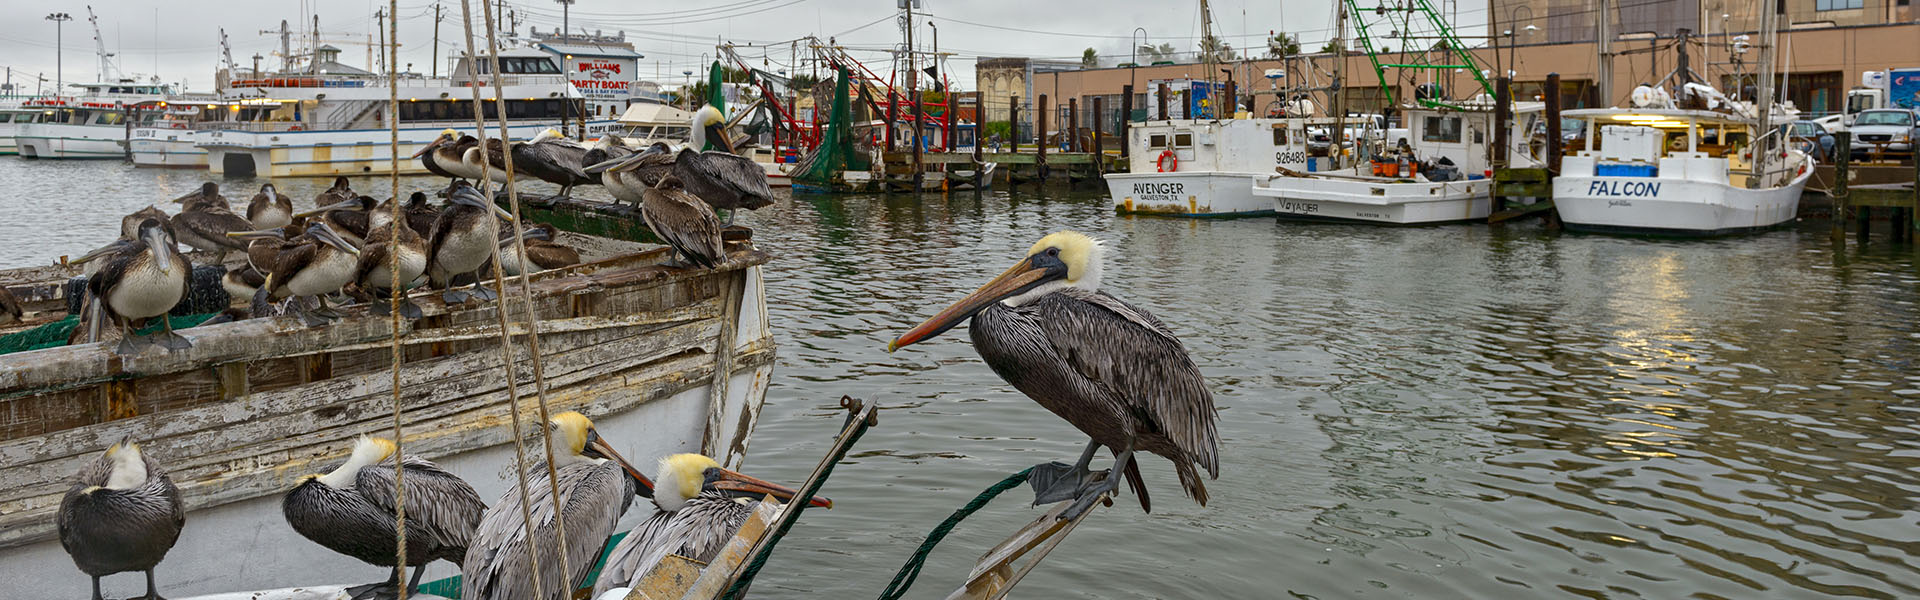 Pelicans on a Shrimp Boat at Pier 19